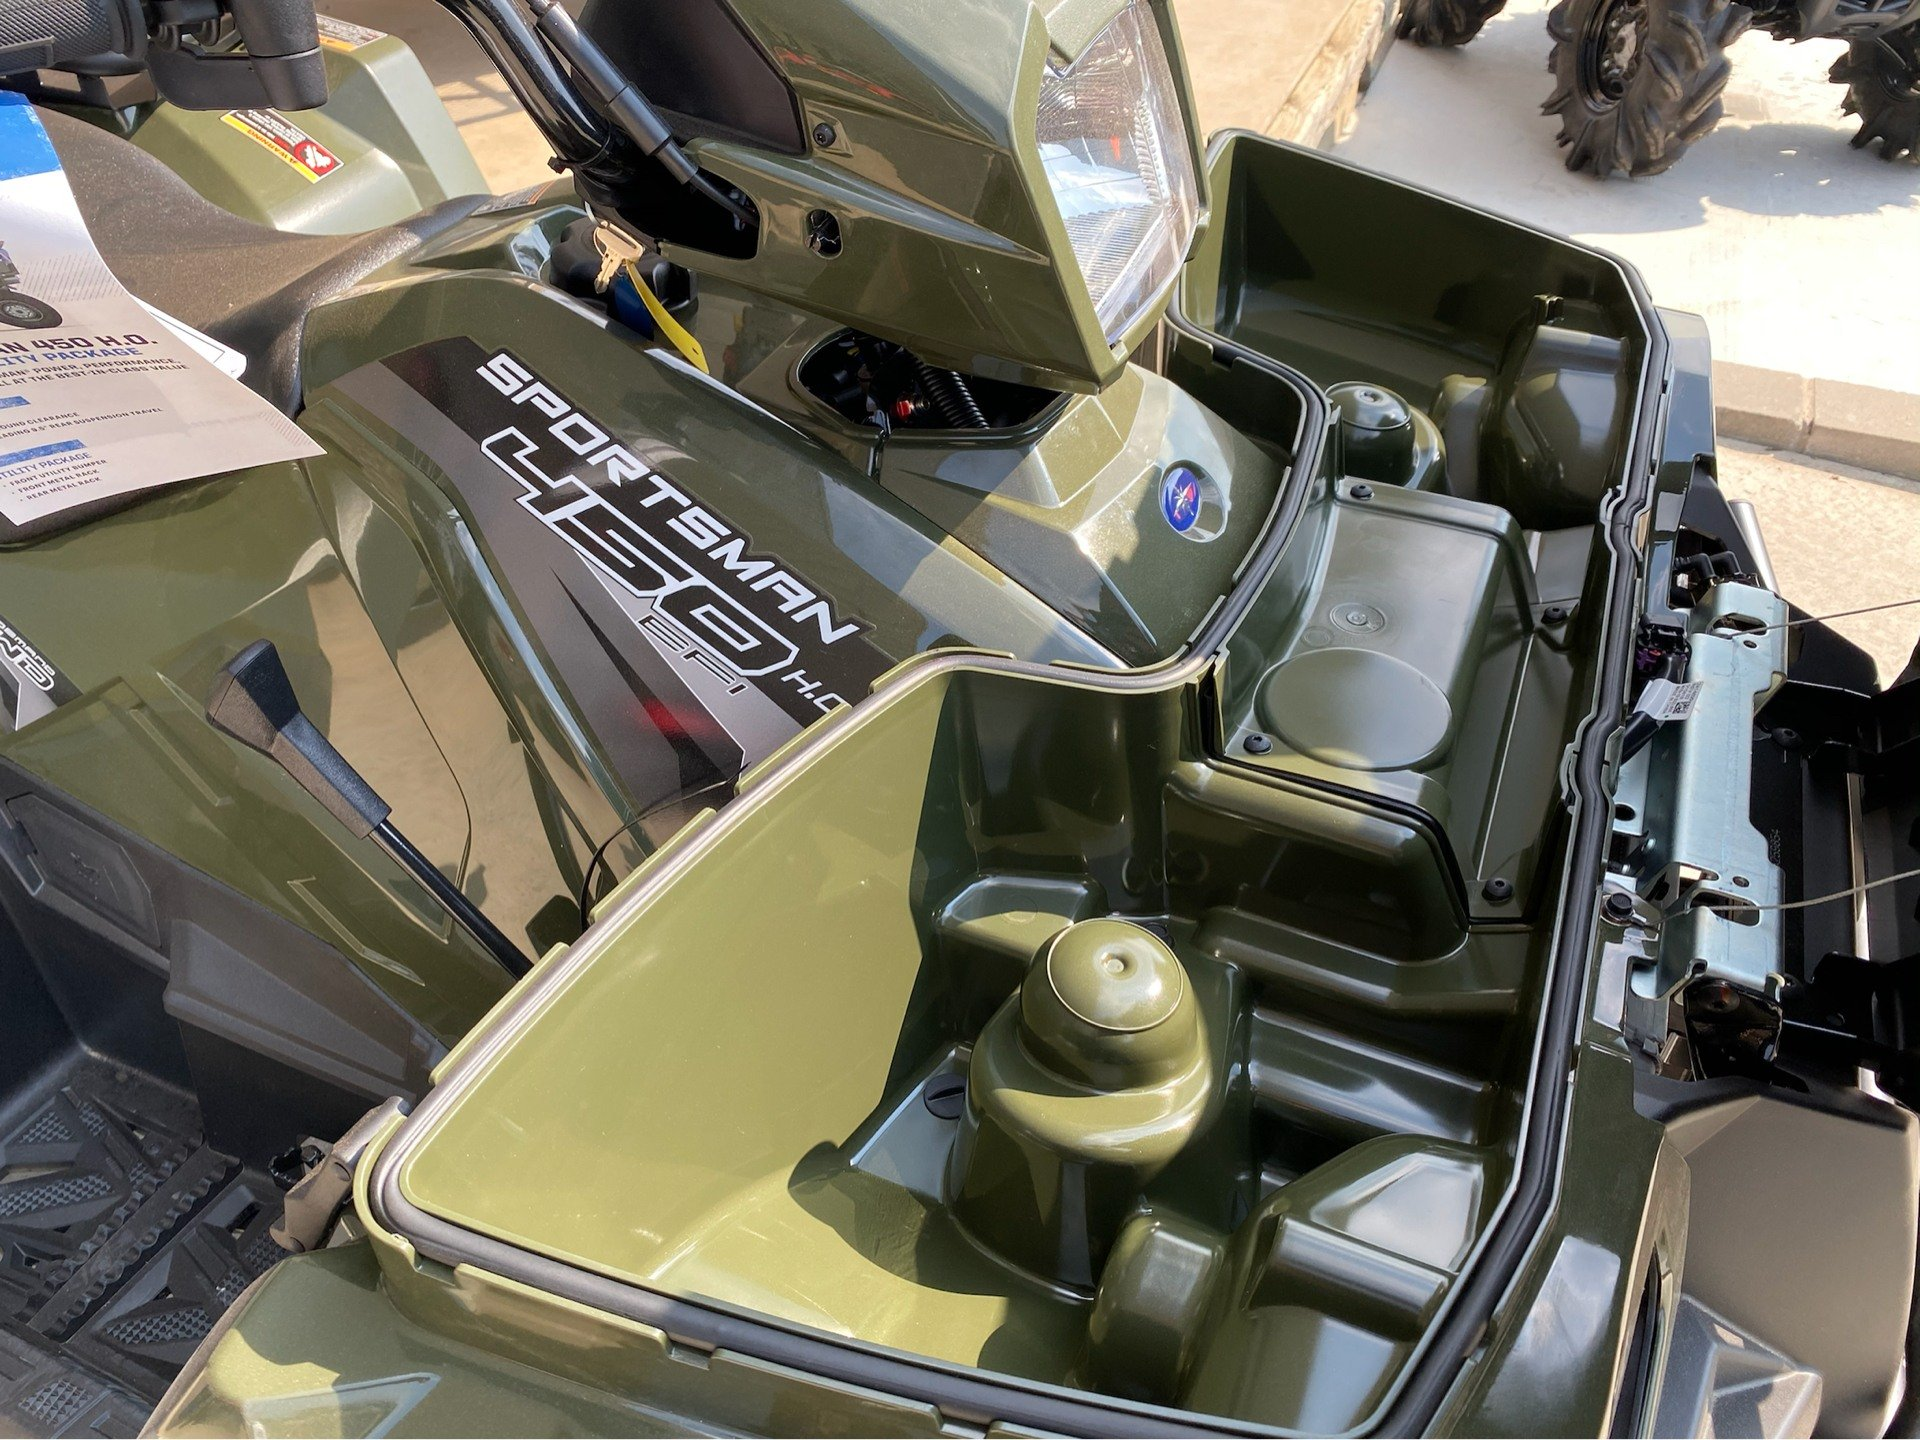 2020 Polaris Sportsman 450 H.O. Utility Package in Marshall, Texas - Photo 7